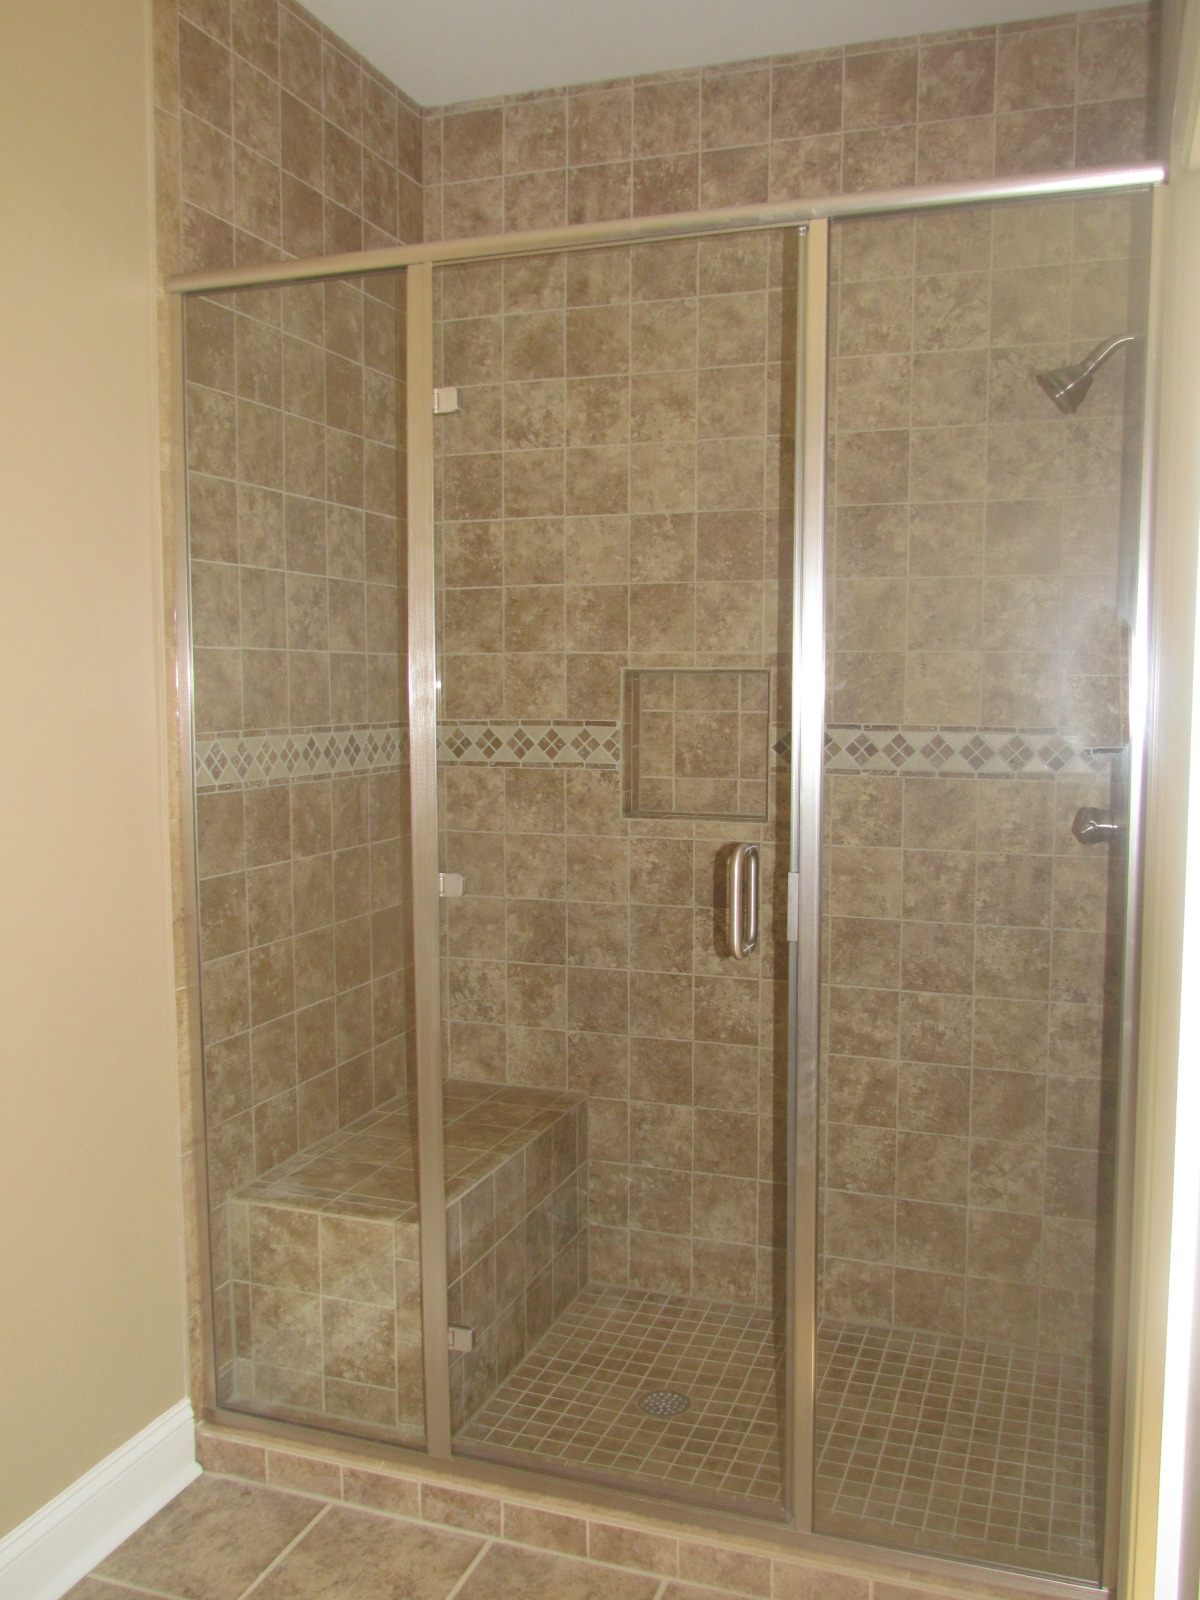 Pictures Of Tiled Showers With Glass Doors | Dream House Ideas